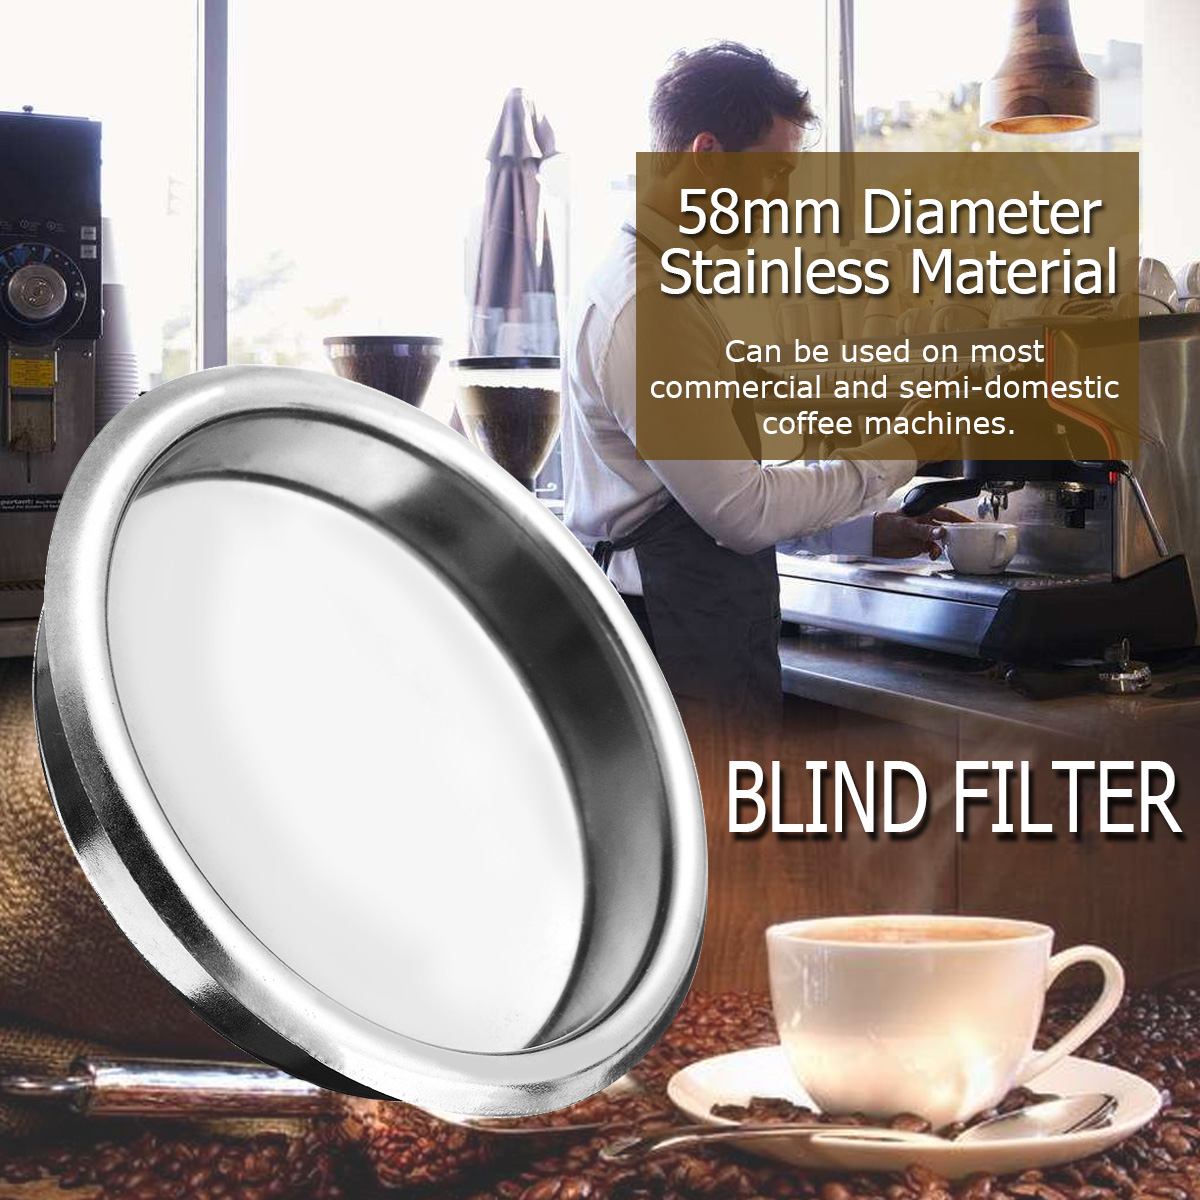 US $2 45 19% OFF|YKPuii 58mm Silver Coffee Filter Blind Filter Espresso  Coffee Machine Maker Backflush Back Flush Basket Stainless Steel-in Coffee